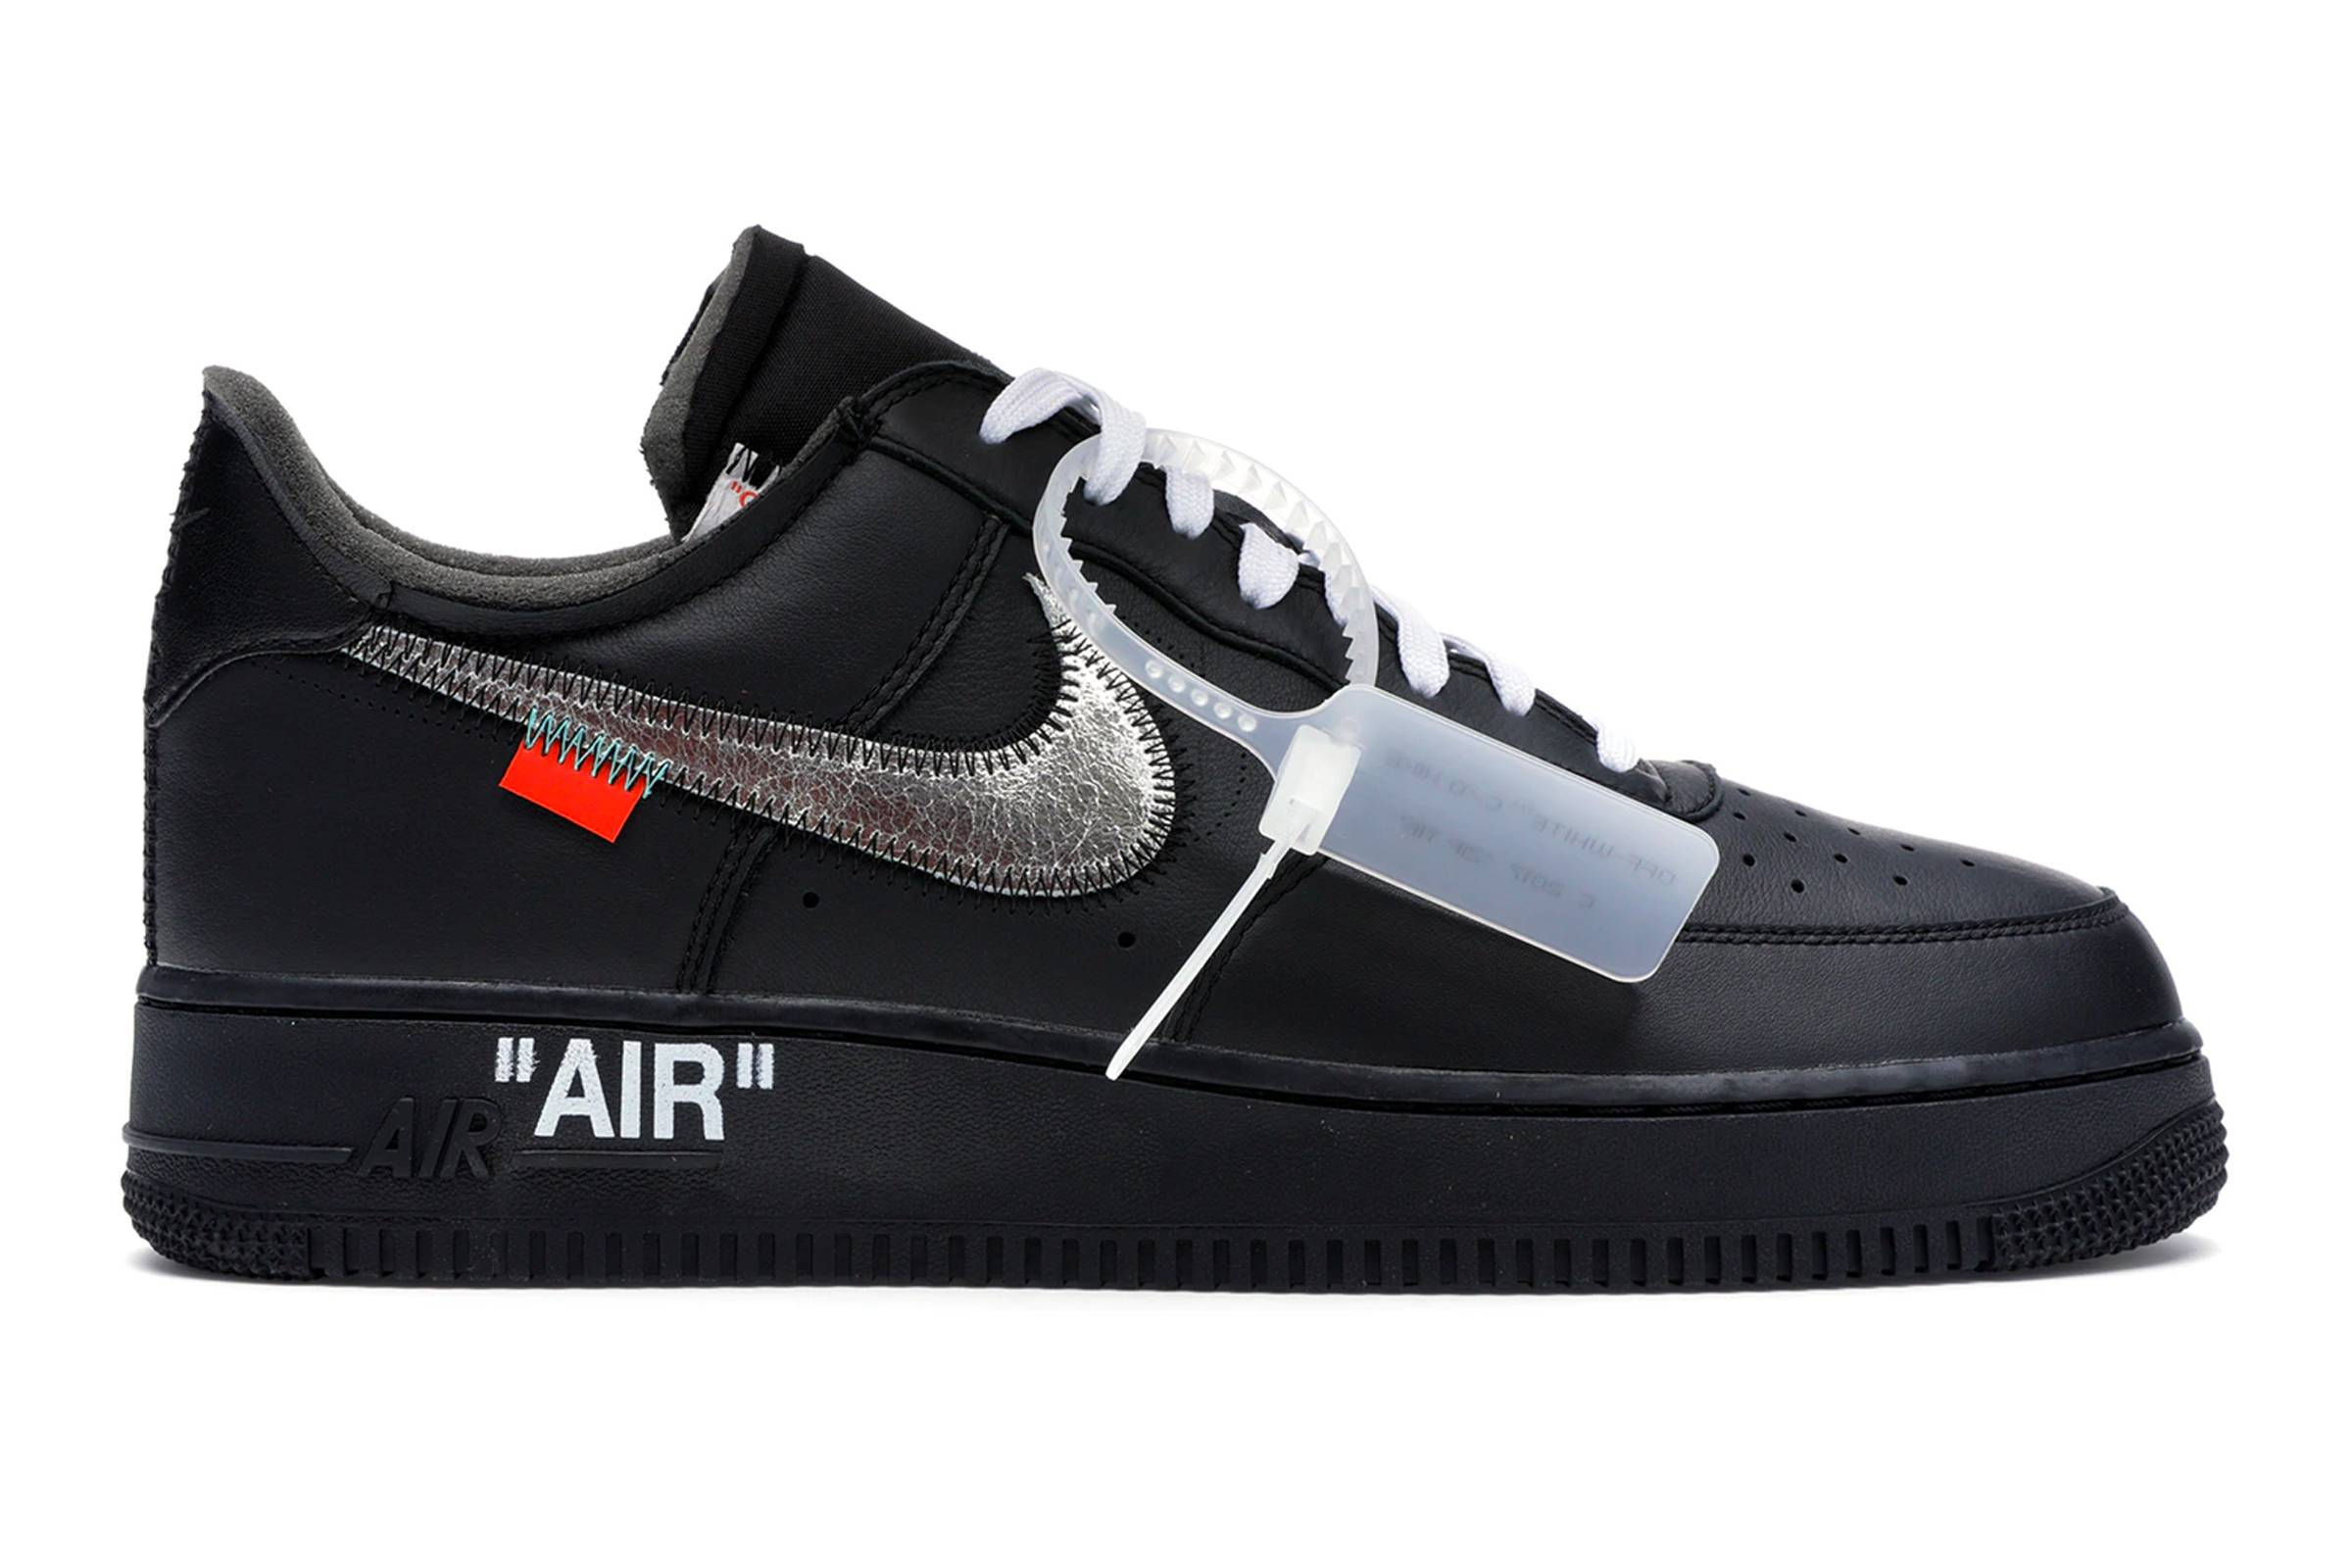 Off-White x MoMA x Nike Air Force 1 '07 Low